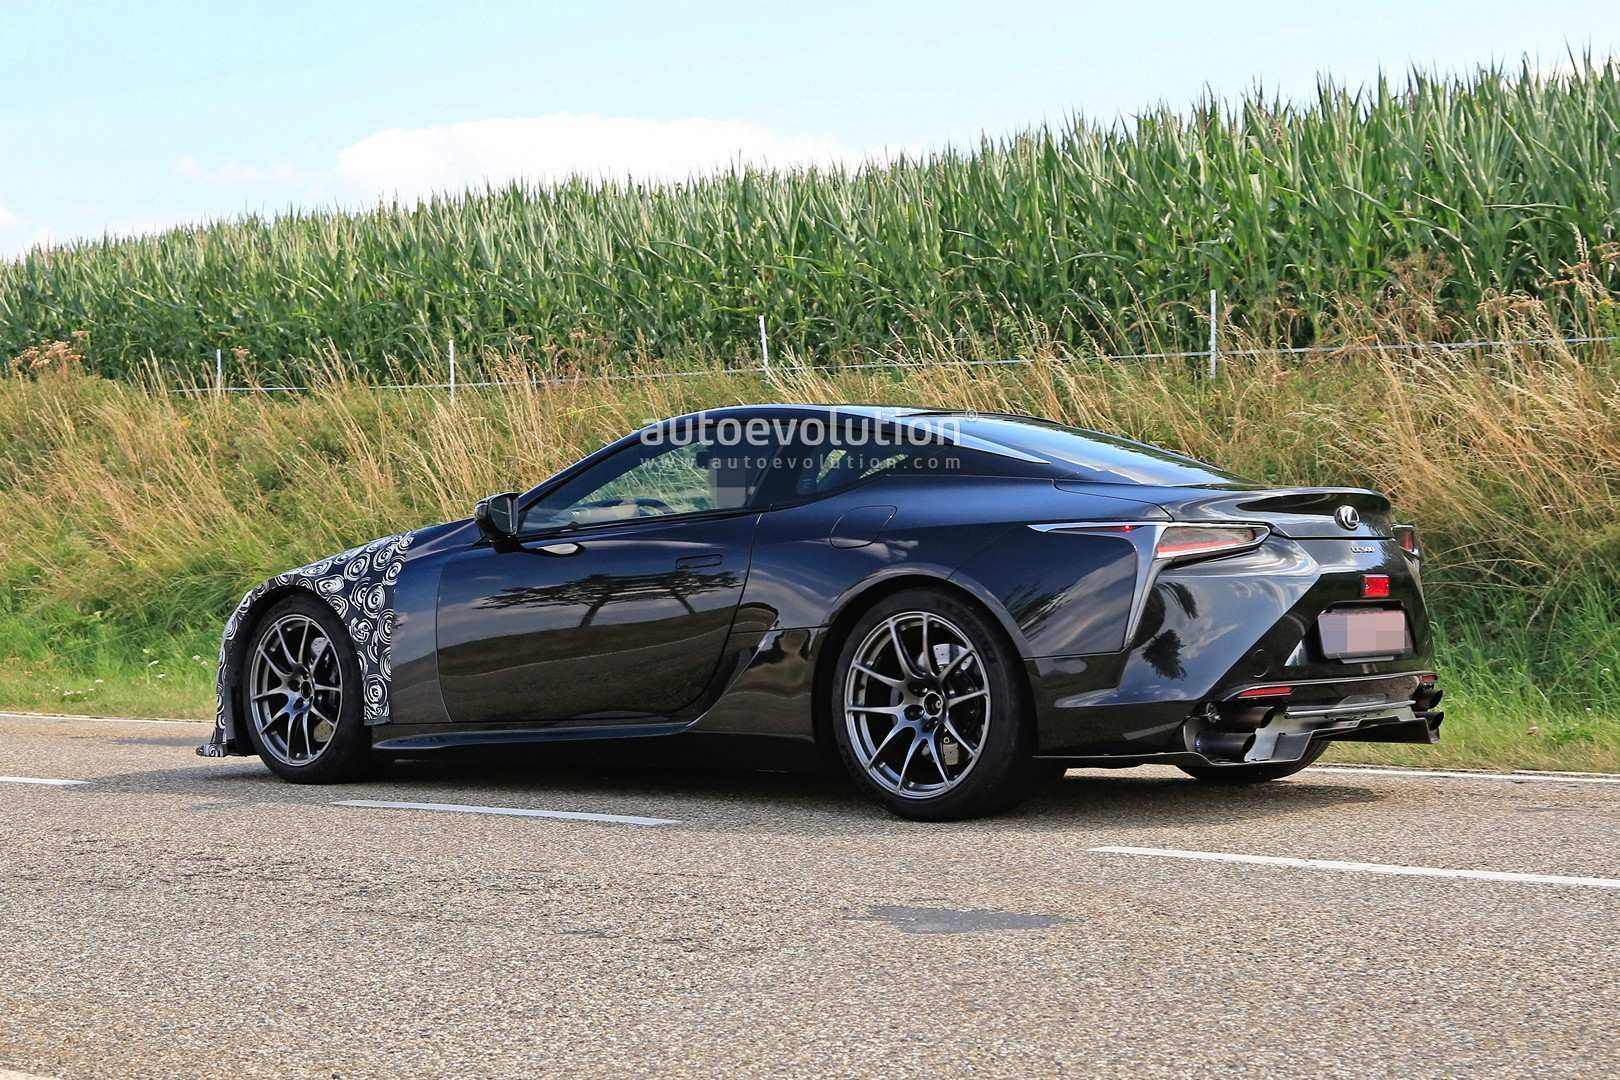 39 Concept of 2020 Lexus Lc F Picture for 2020 Lexus Lc F